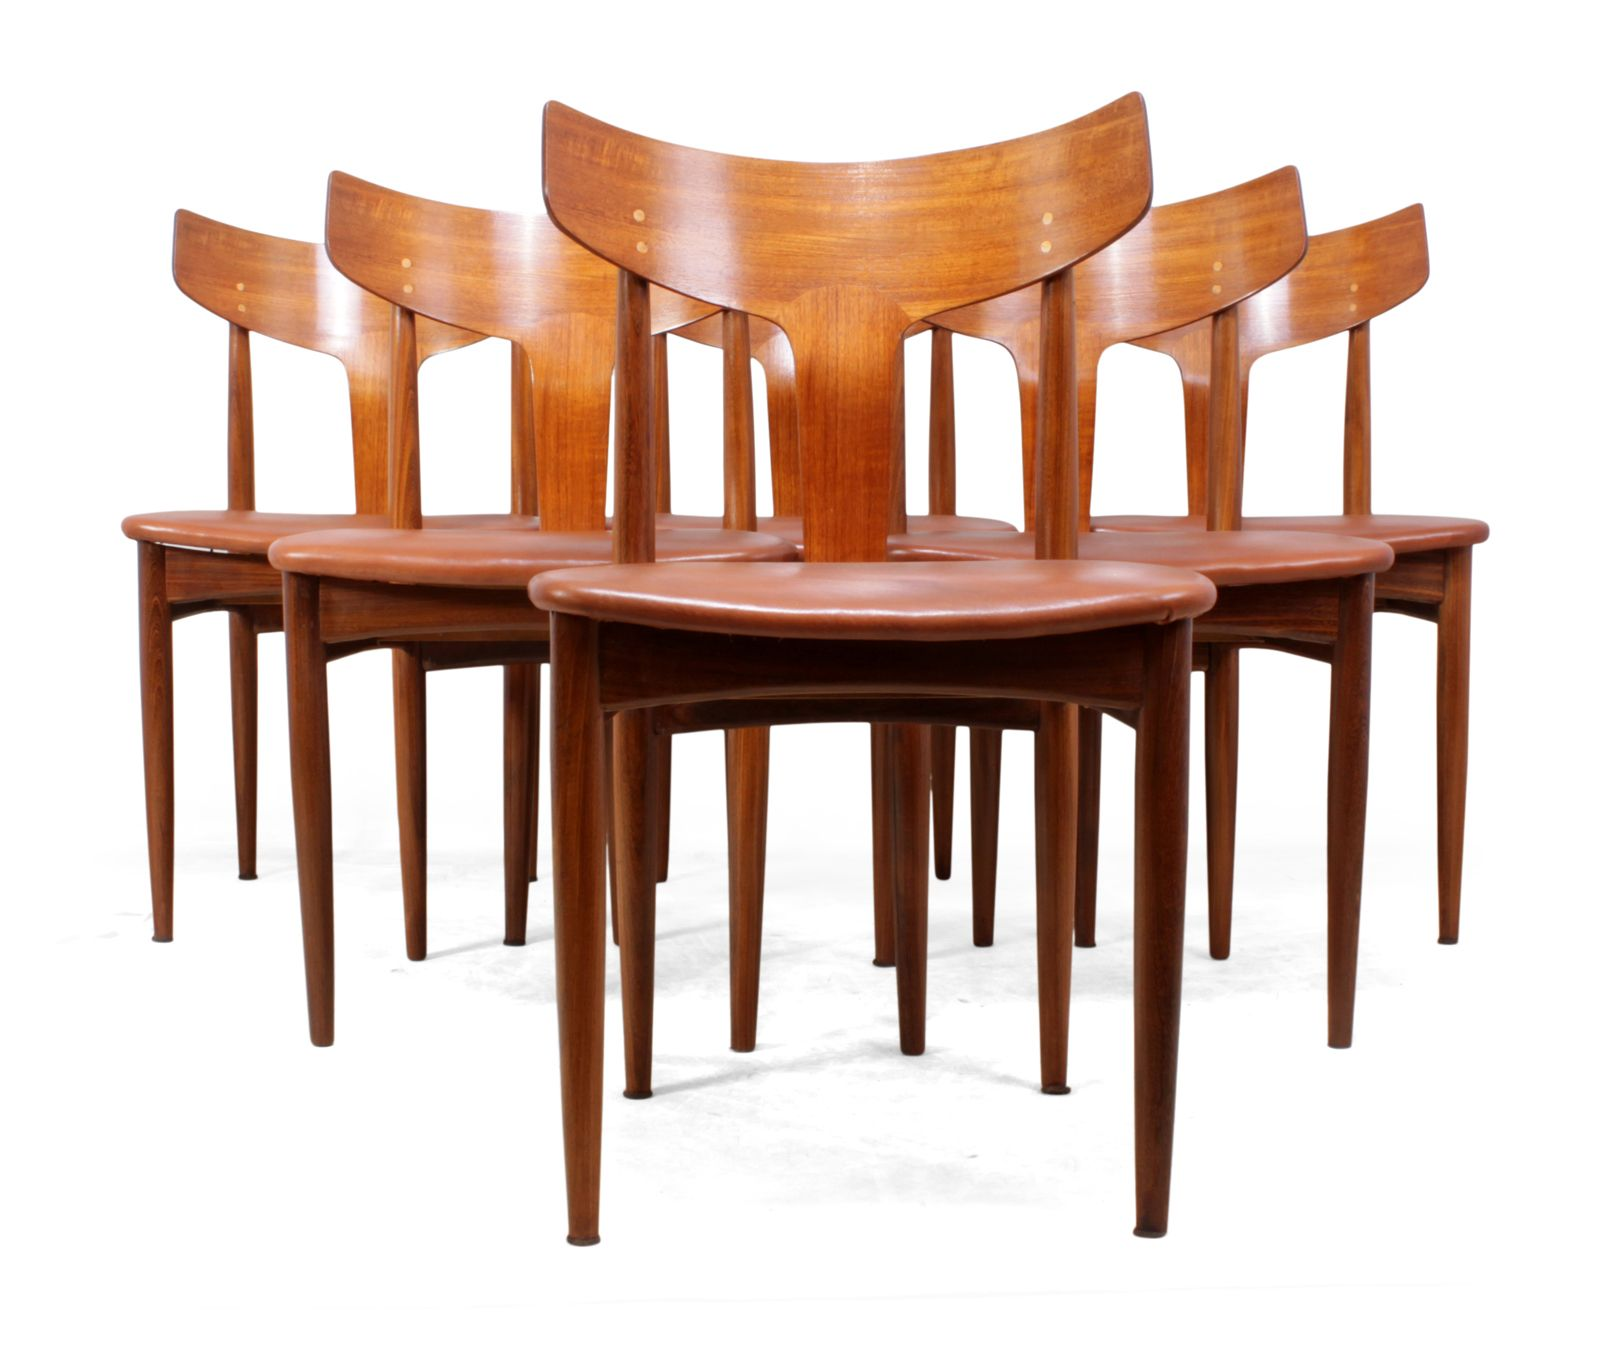 dining chairs for sale - HD1600×1345